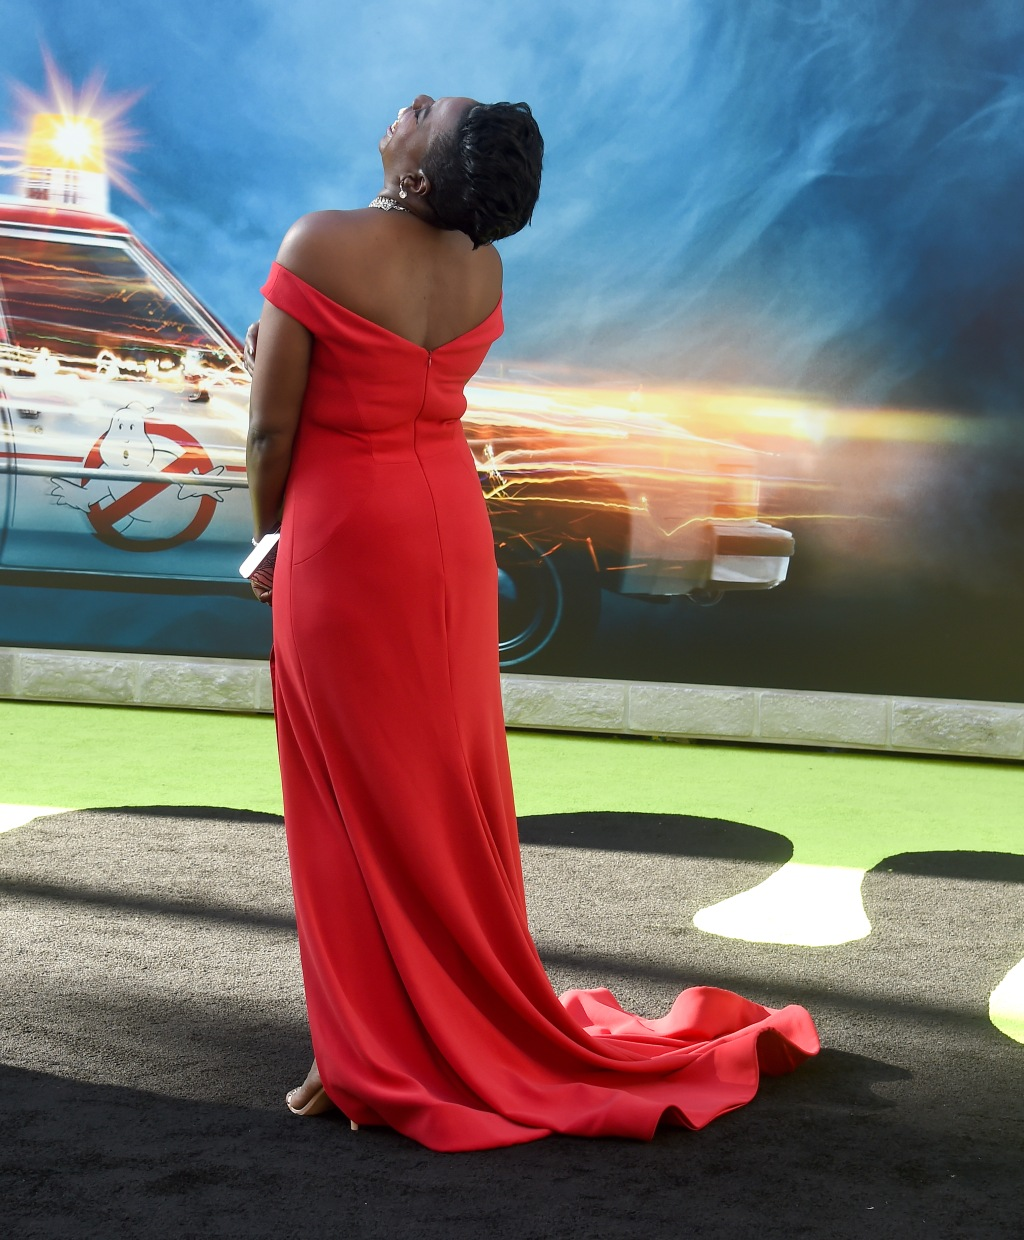 Premiere Of Sony Pictures' 'Ghostbusters' - Arrivals